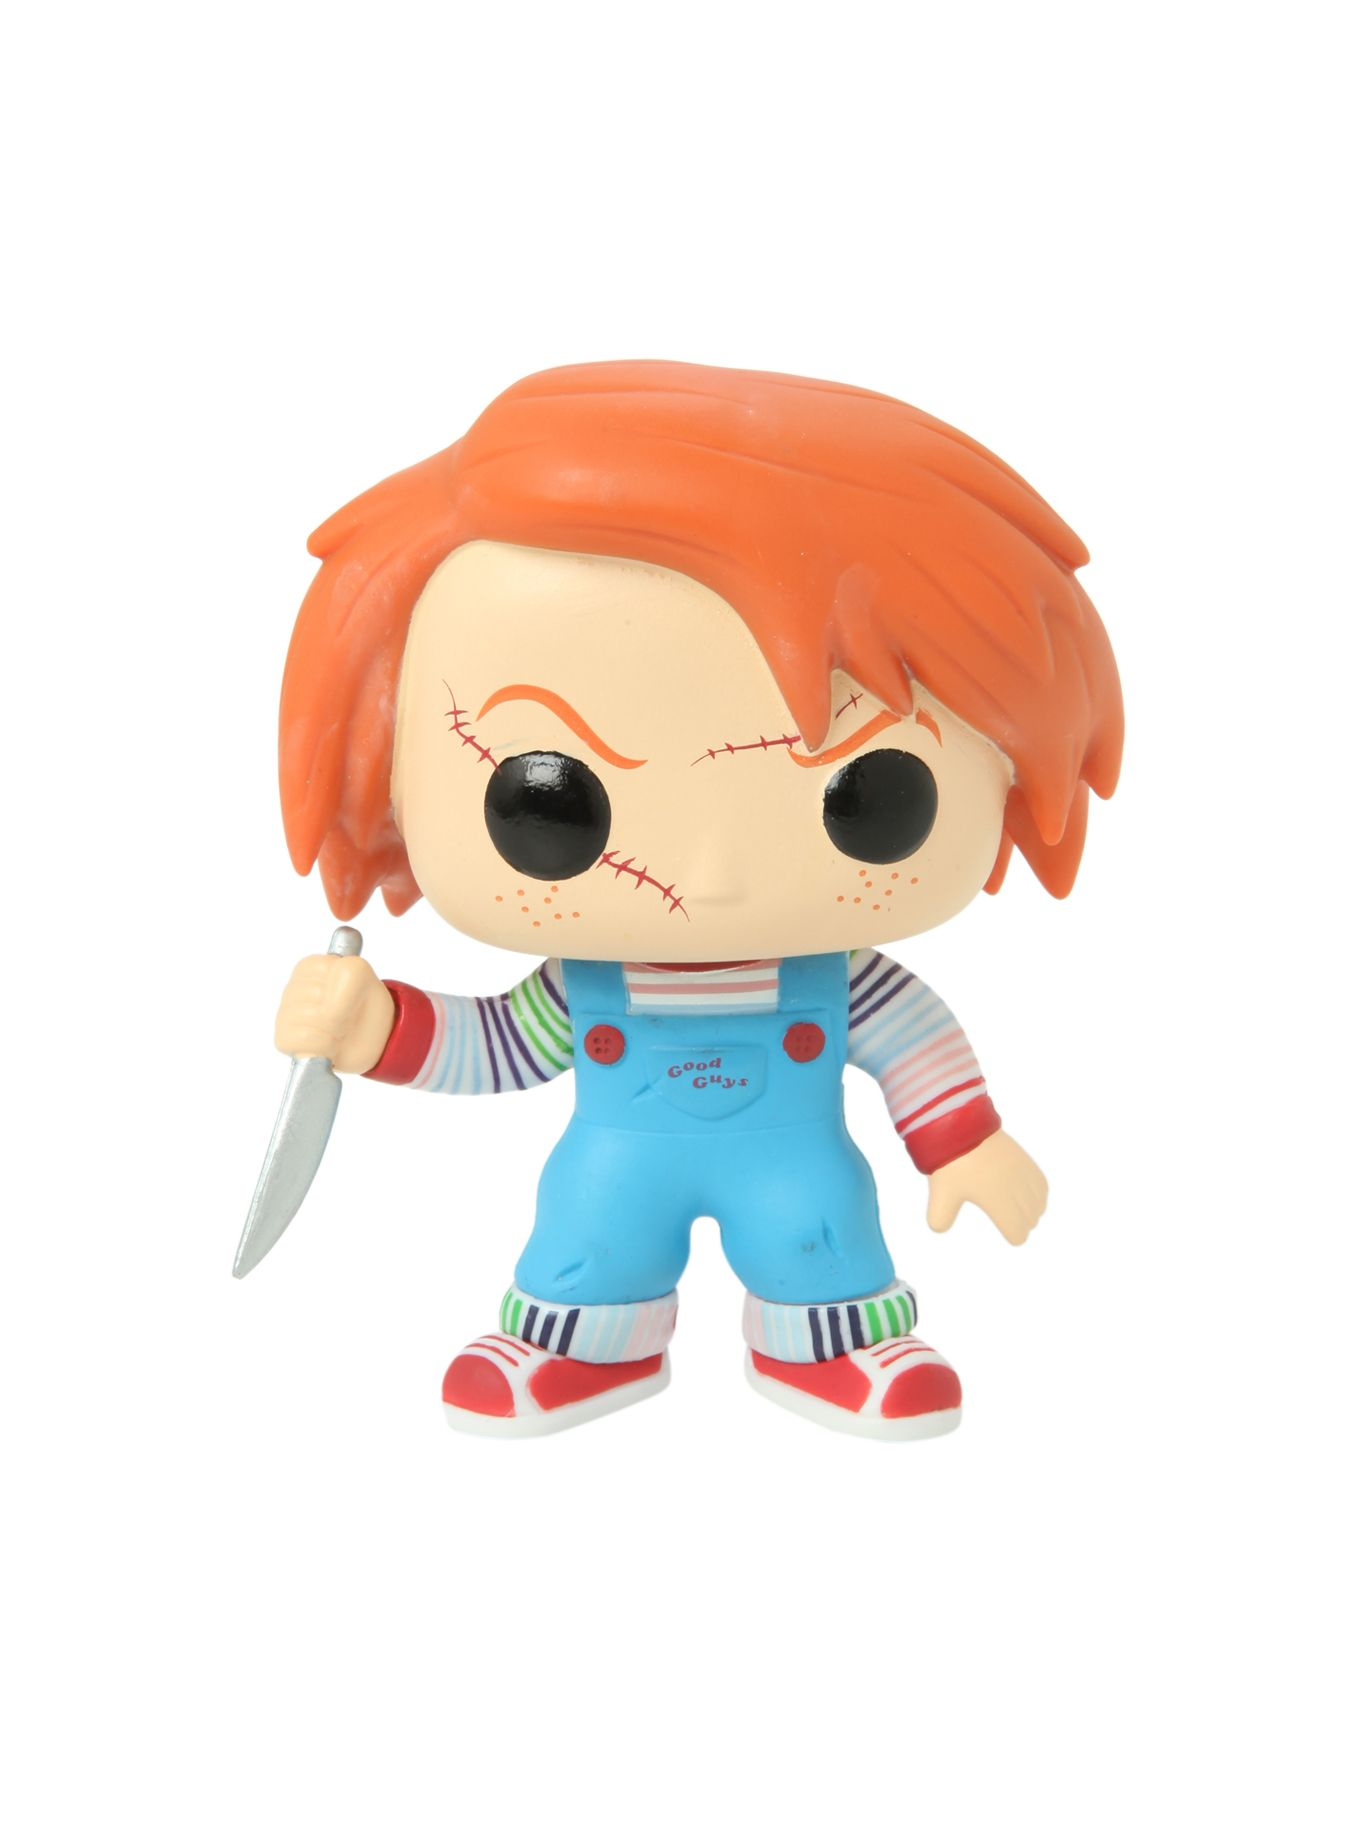 This doll is killer.